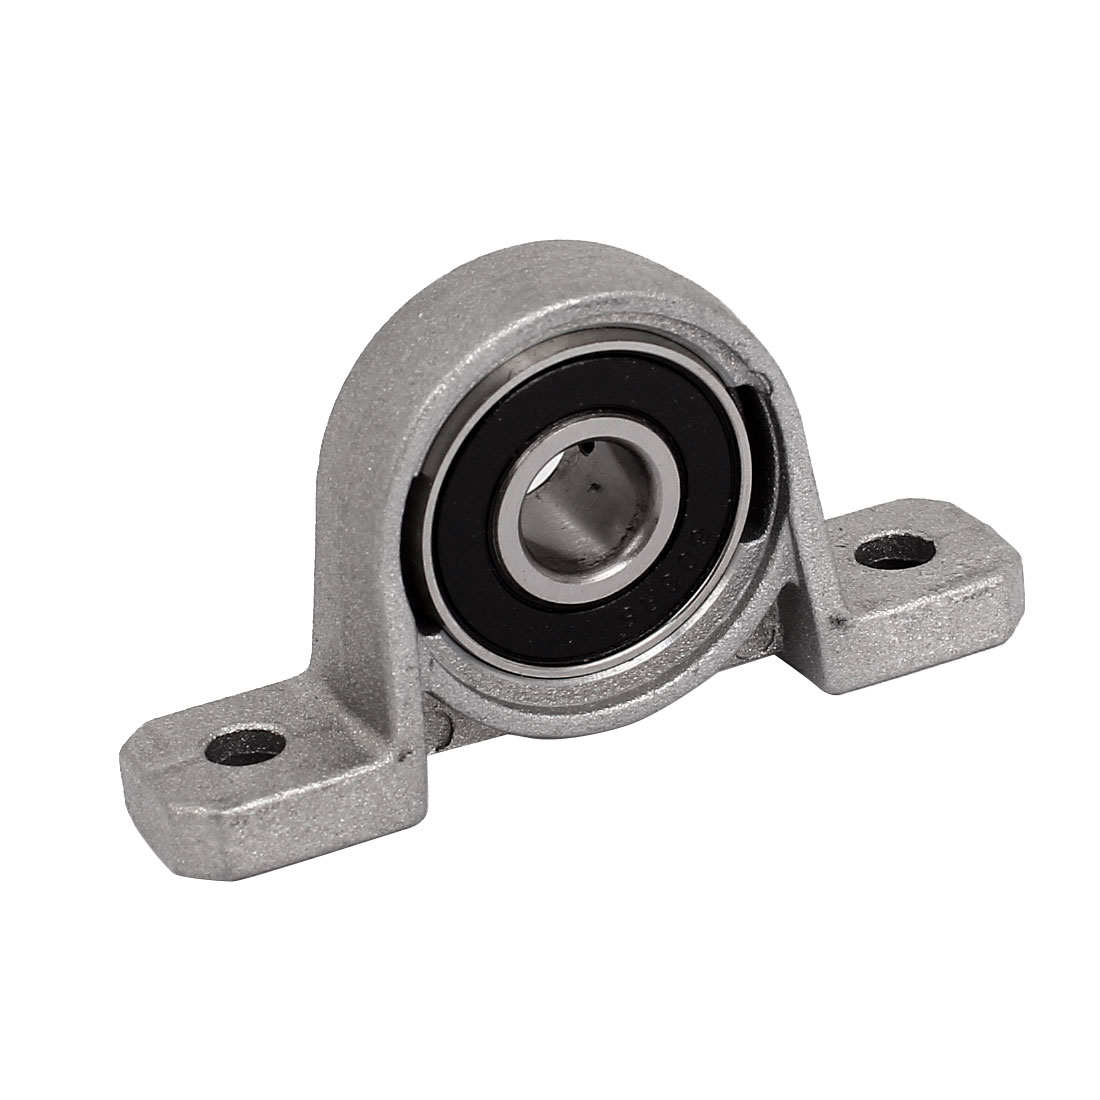 KP08 8mm Dia Bore Self-aligning Vertical Mounted Flange Bearing Pillow Block